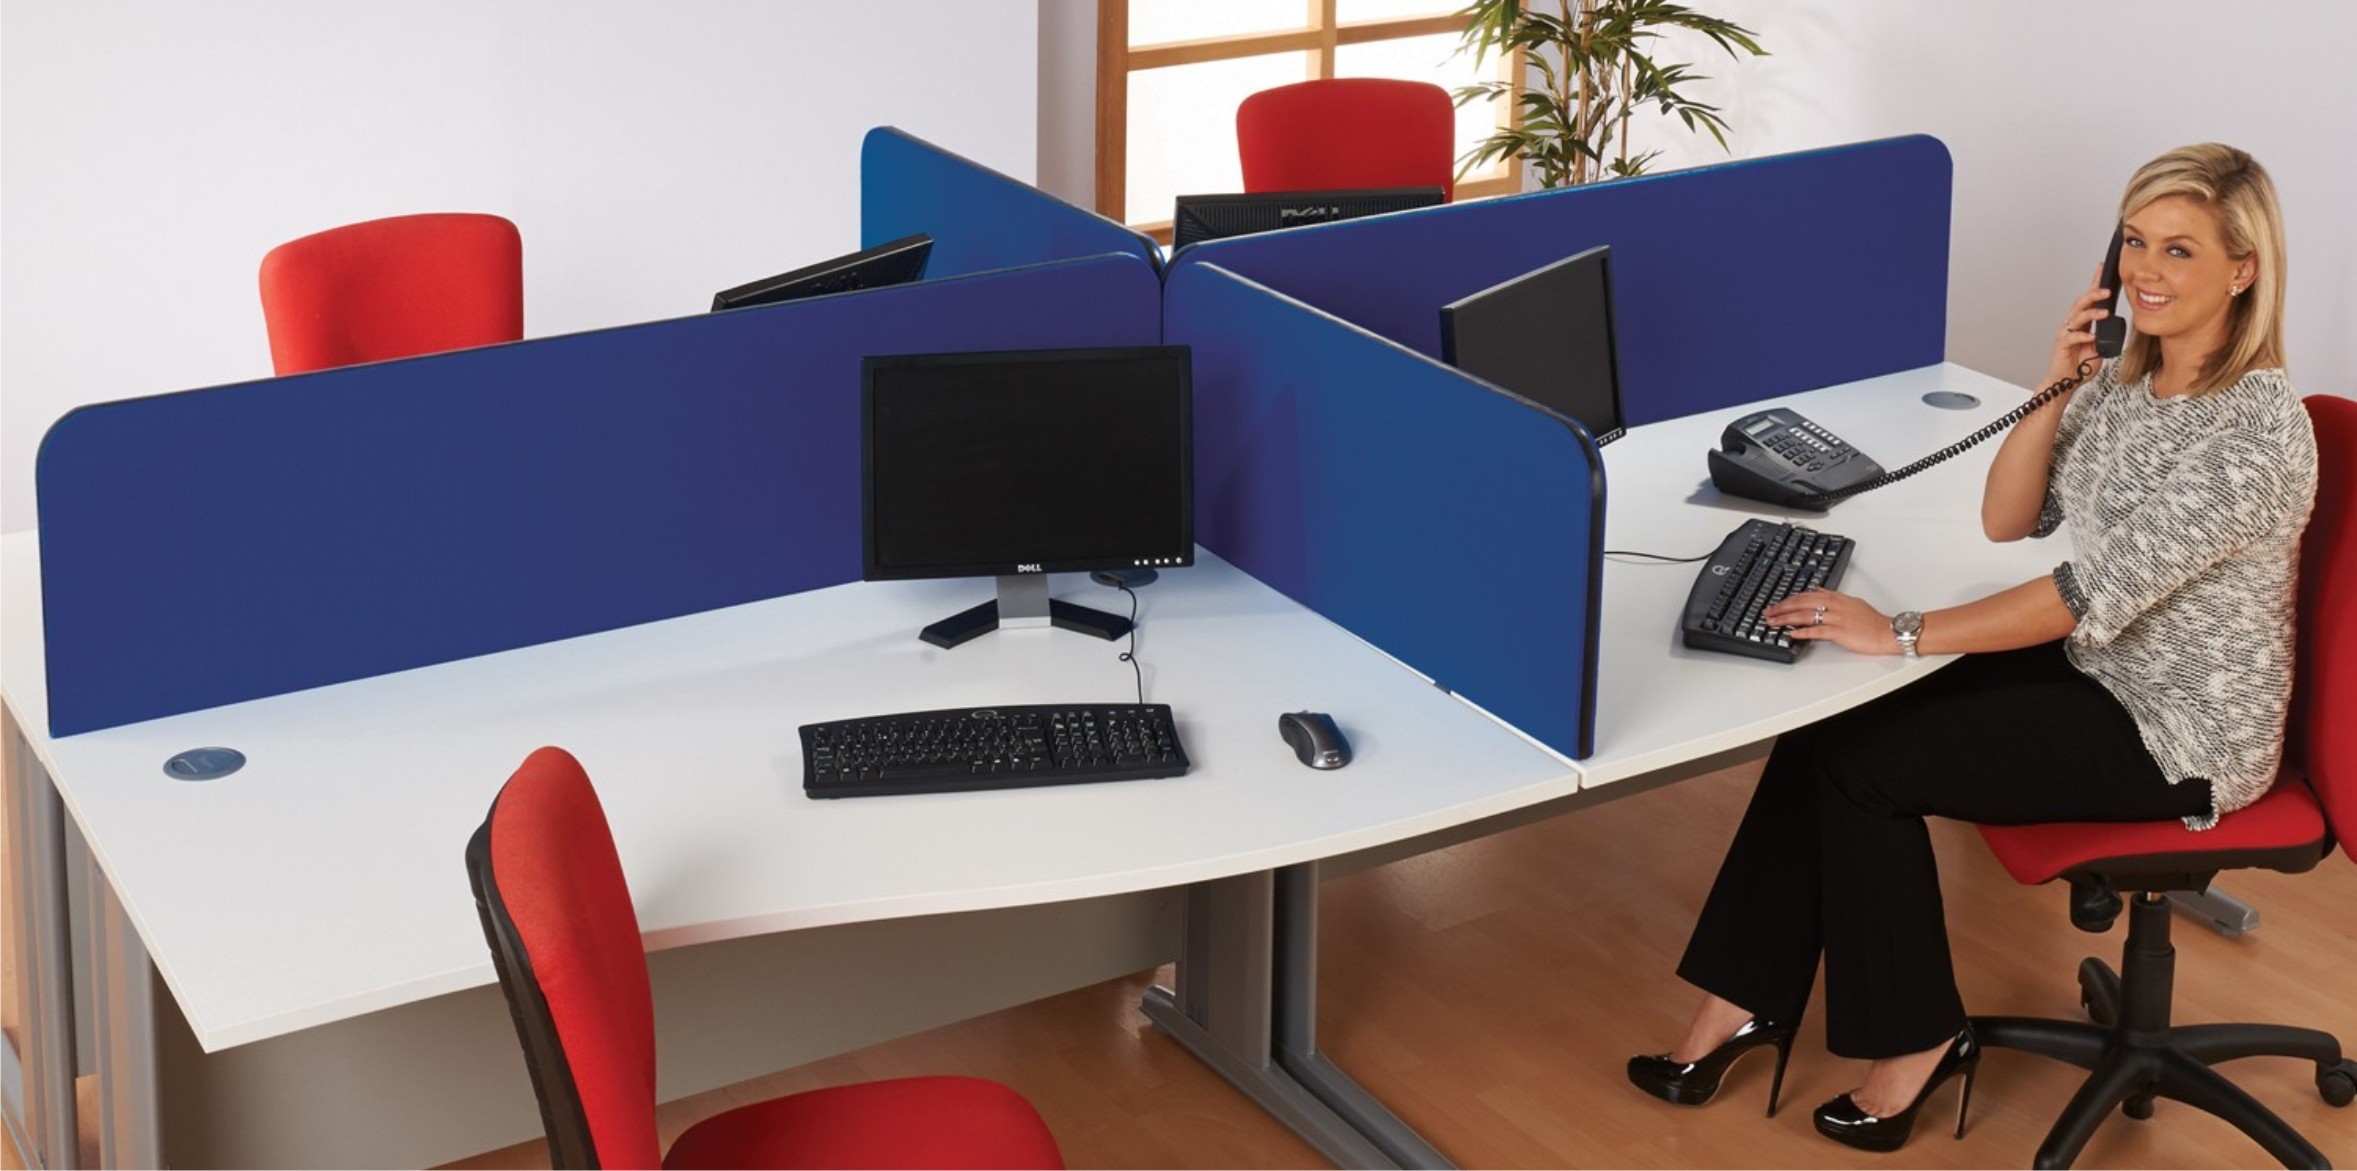 BusyScreen Curve Desk Screens